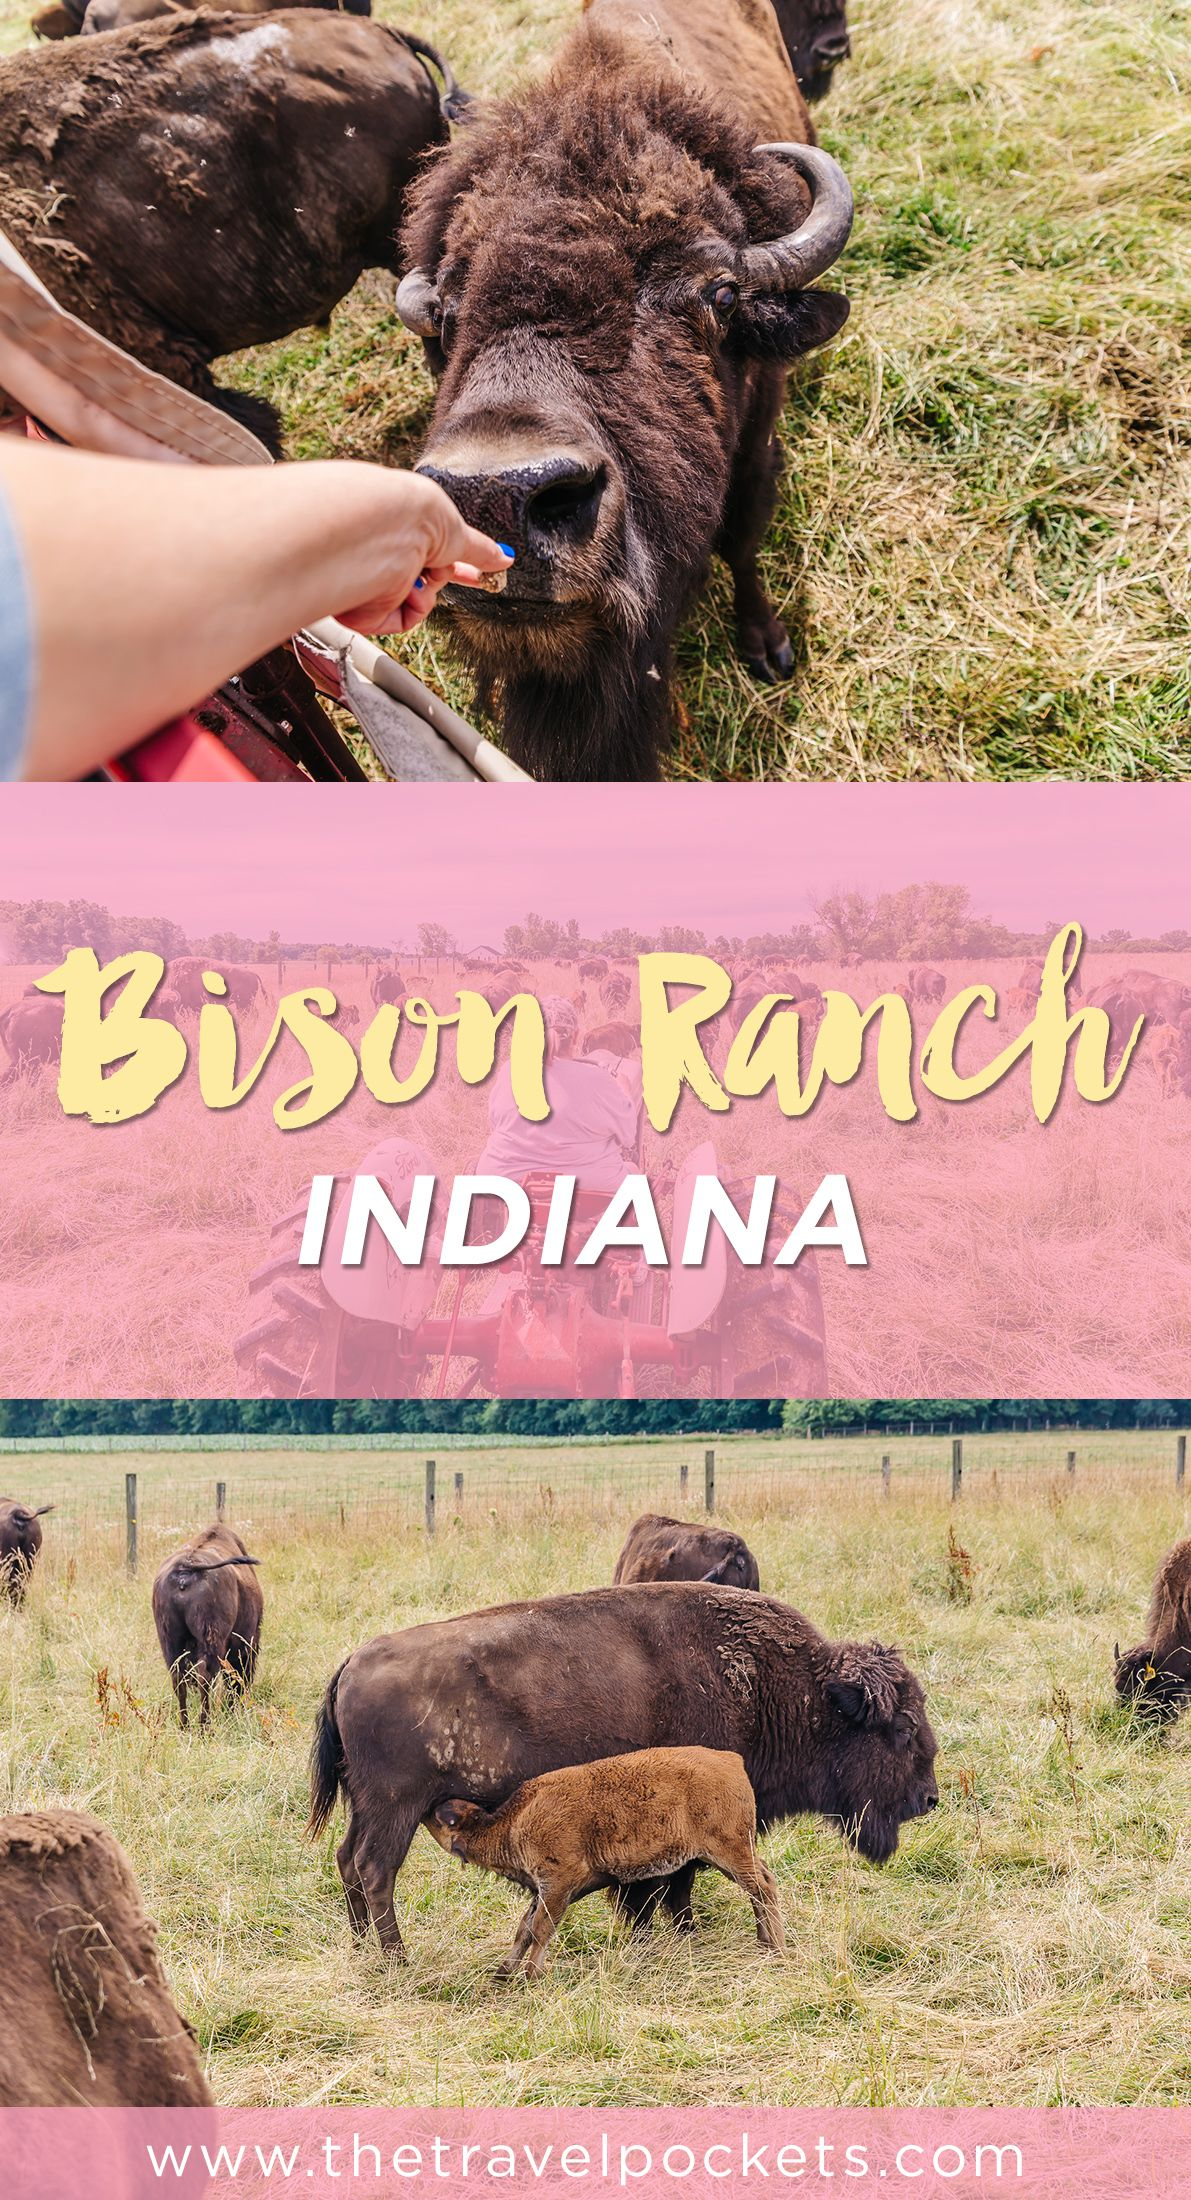 Cook's Bison Ranch In Indiana